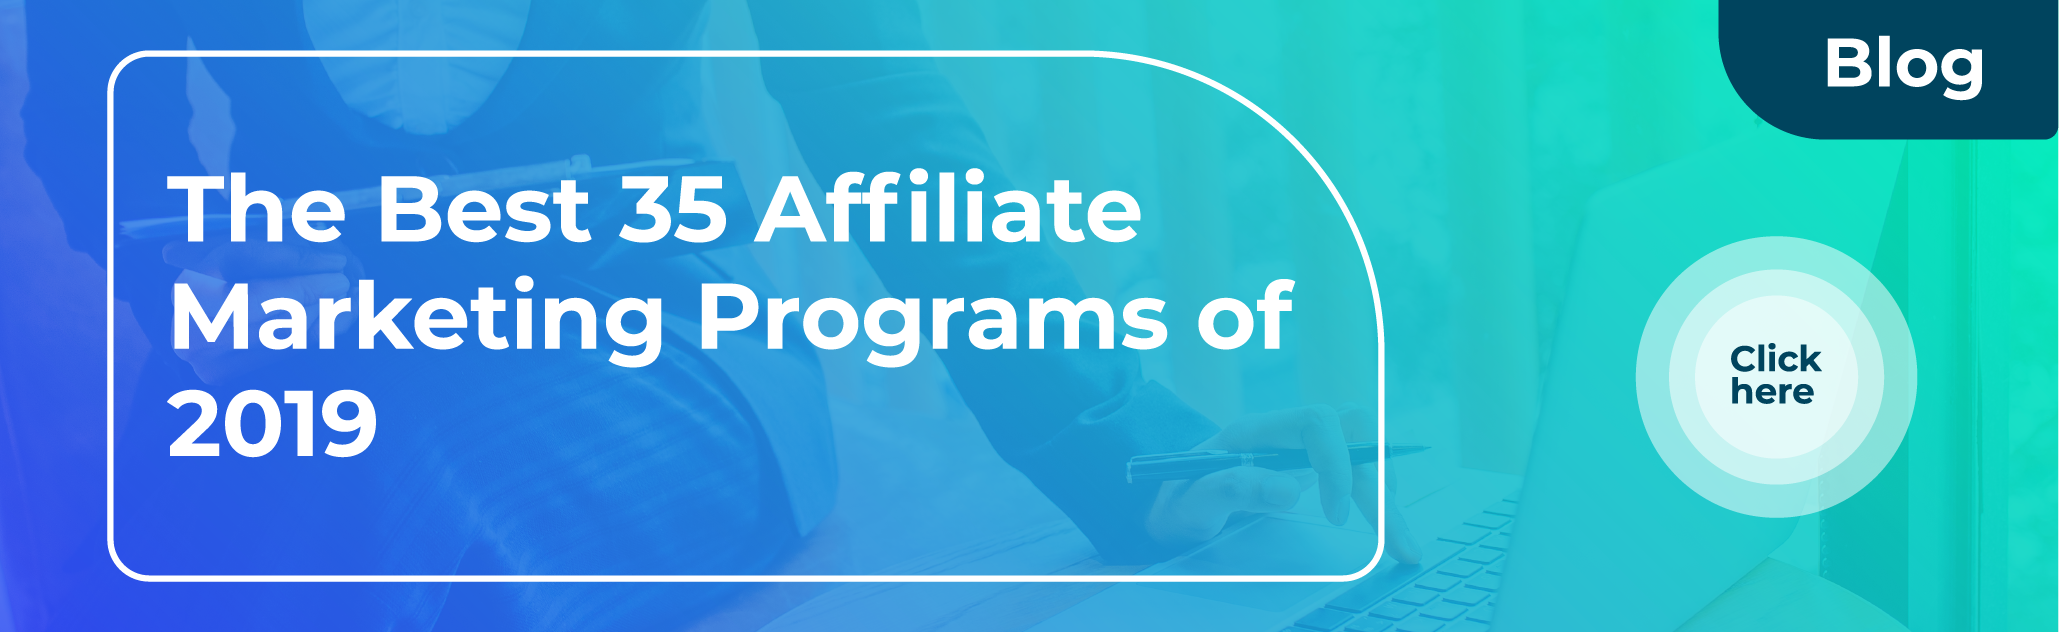 The Best 35 Affiliate Marketing Programs of 2019 | Botkeeper